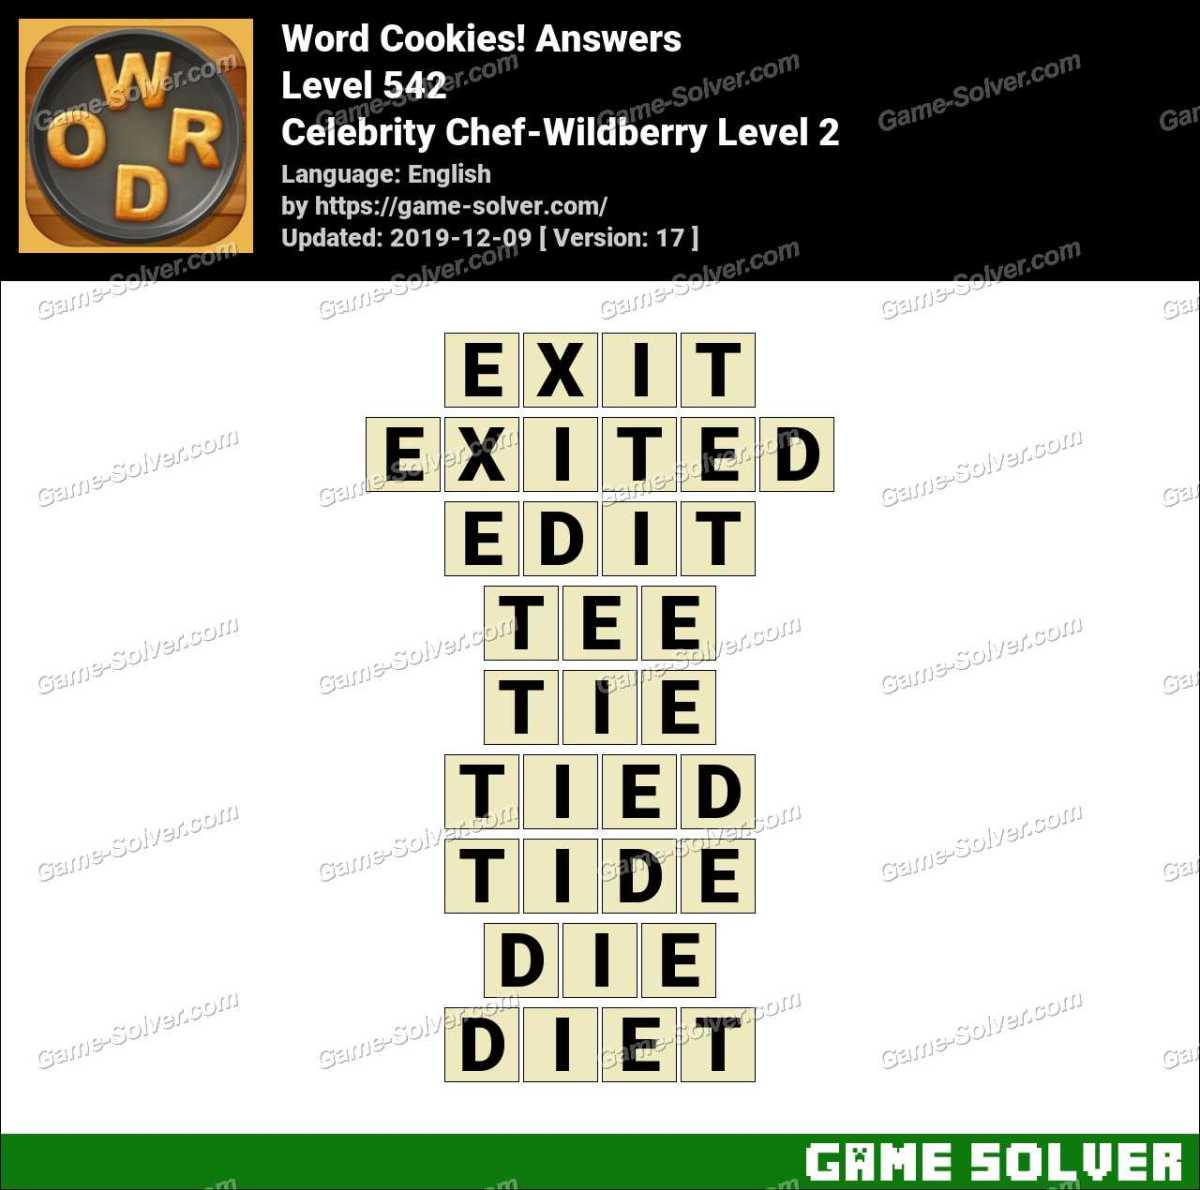 Word Cookies Celebrity Chef-Wildberry Level 2 Answers